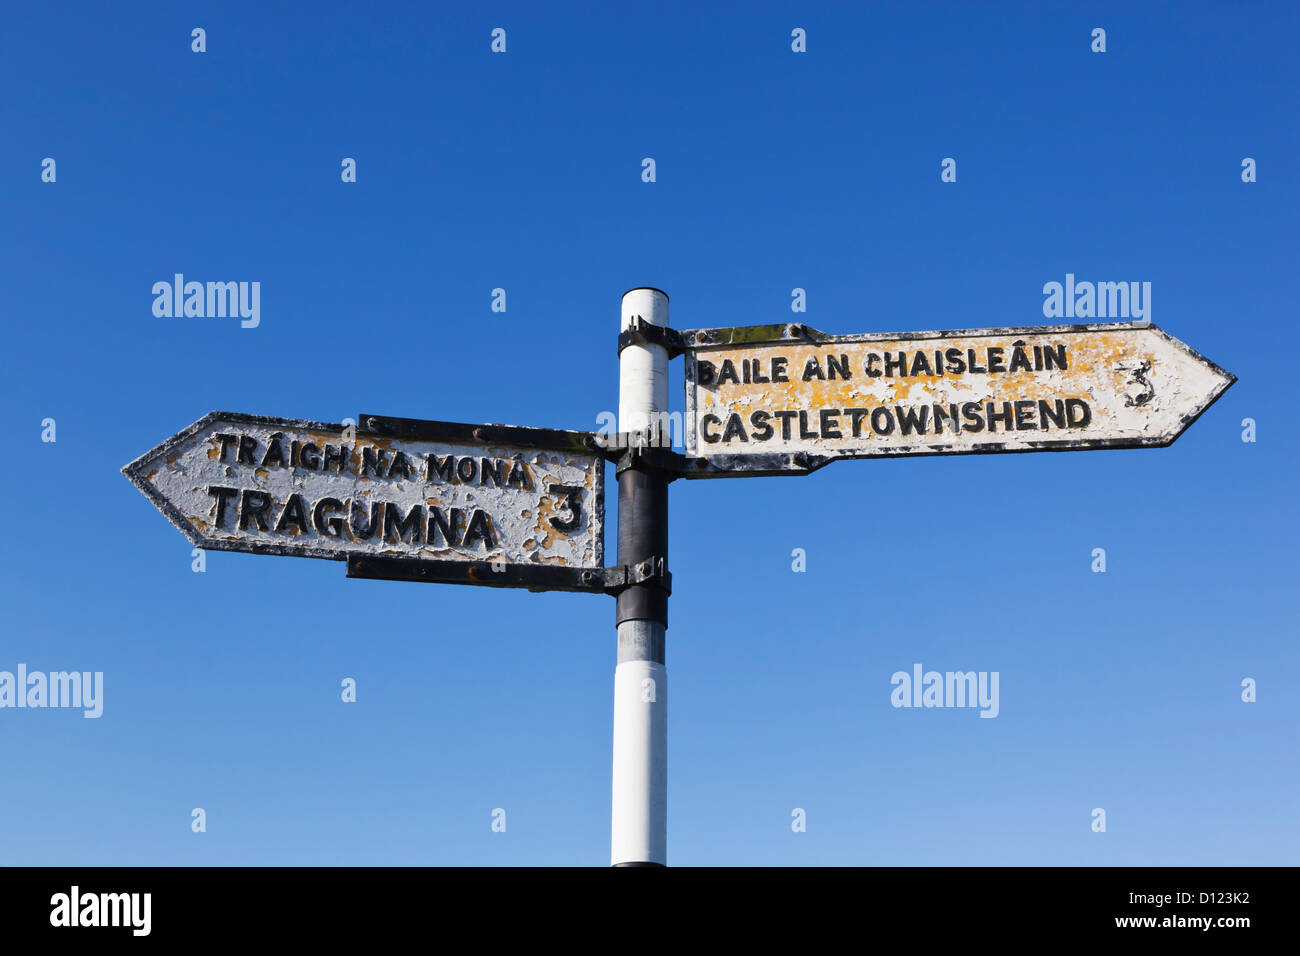 gaelic road signs photos gaelic road signs images alamy. Black Bedroom Furniture Sets. Home Design Ideas